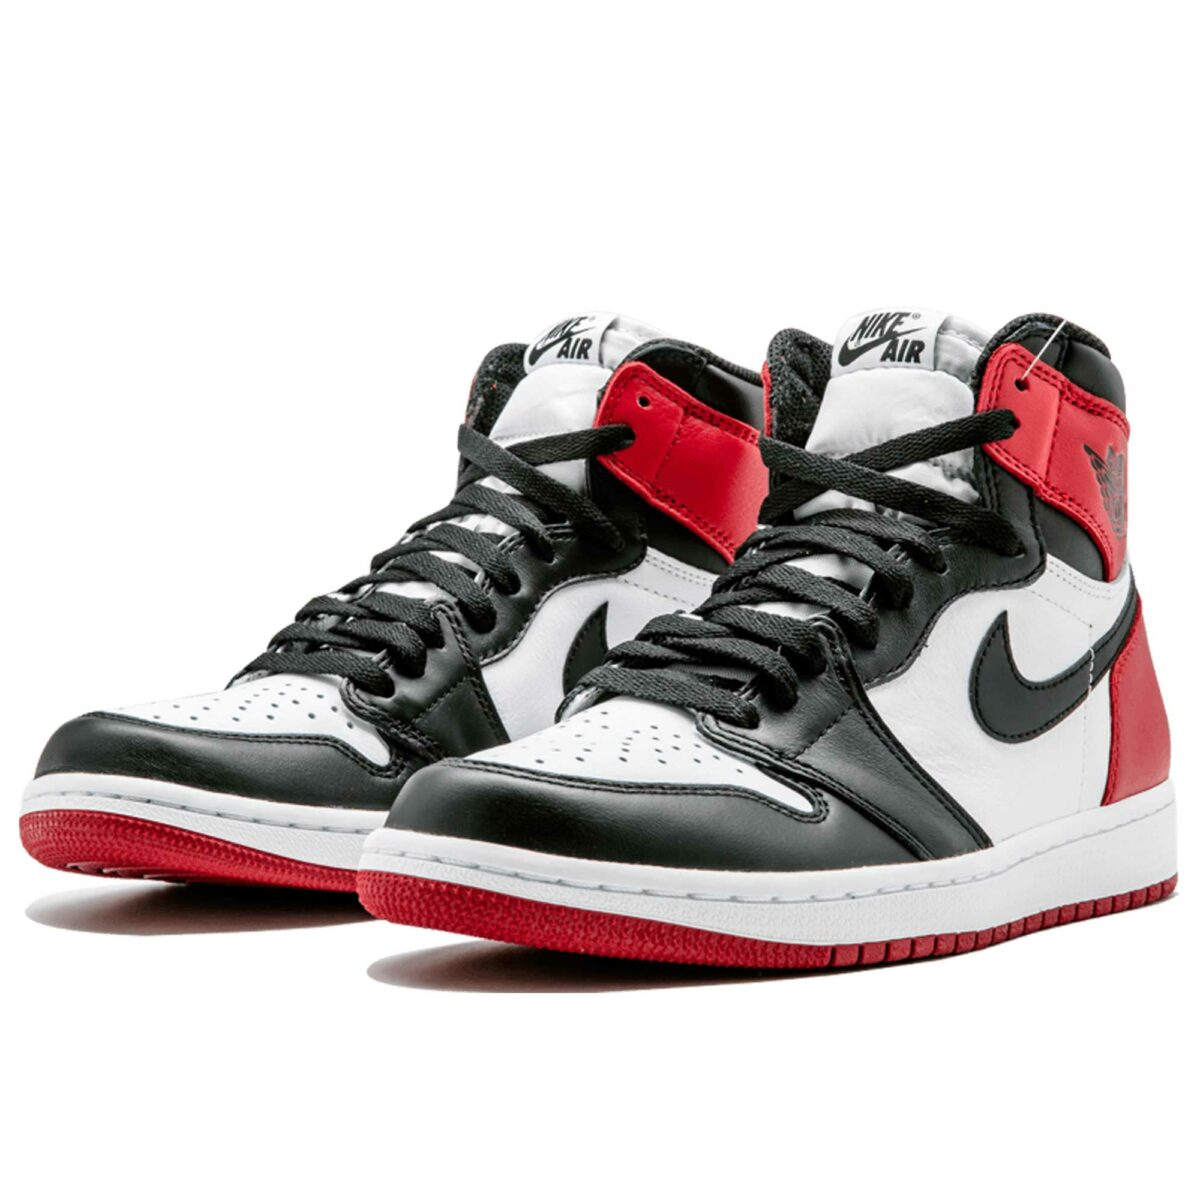 Jordan 1 retro high og black toe 555088_125 купить